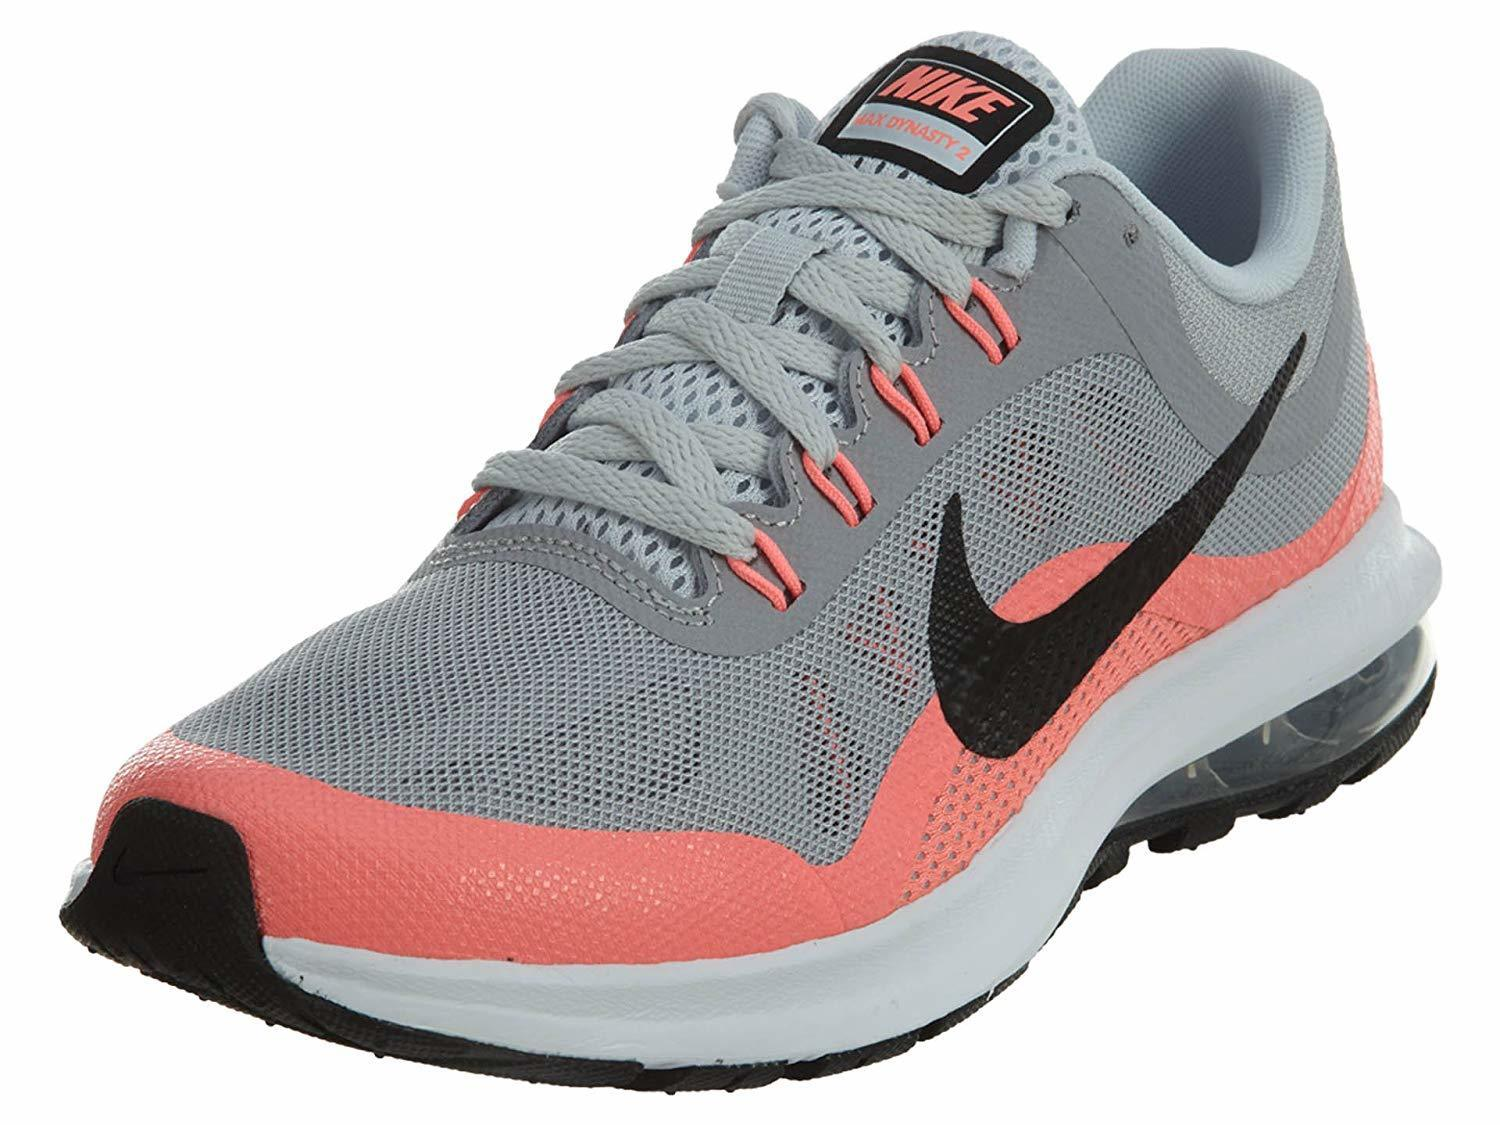 timeless design 7db18 4fd98 Show All Item Images. close. fit to viewer. prev next. NIKE AIR MAX Dynasty  2 (GS) Girls Running-Shoes 859577